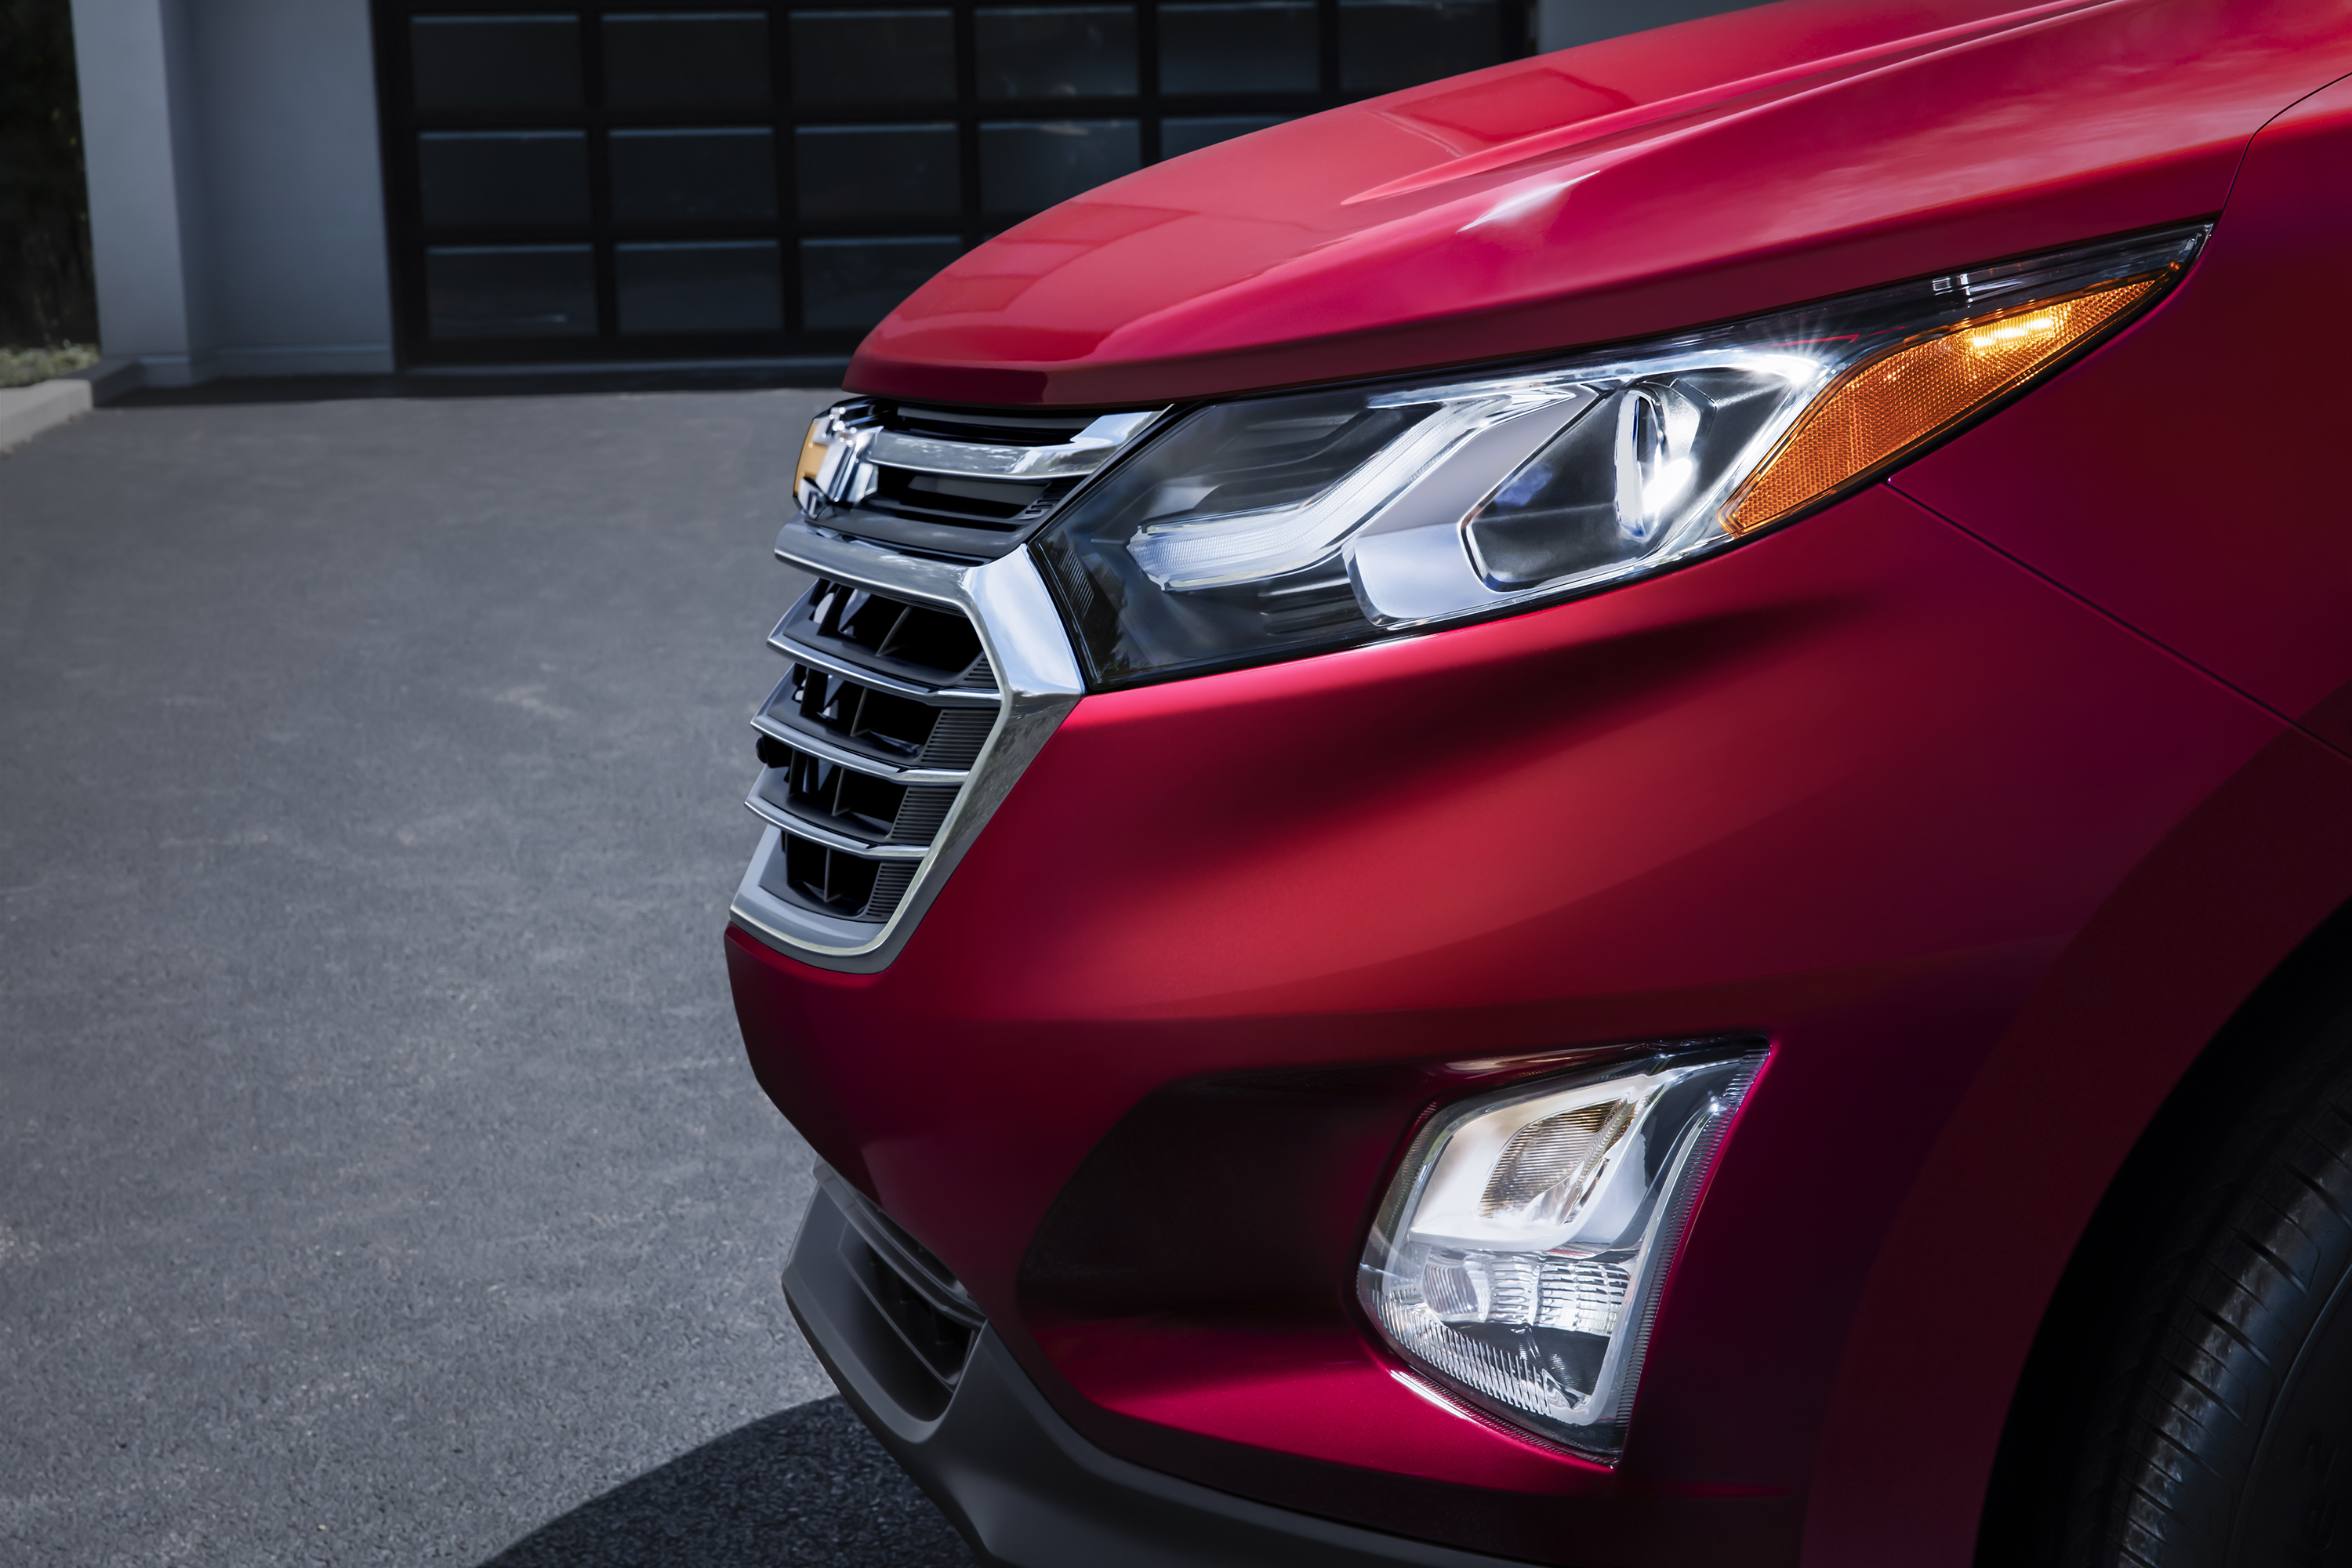 Safety First For The All New 2018 Chevrolet Equinox Automatic Headlight Reminder